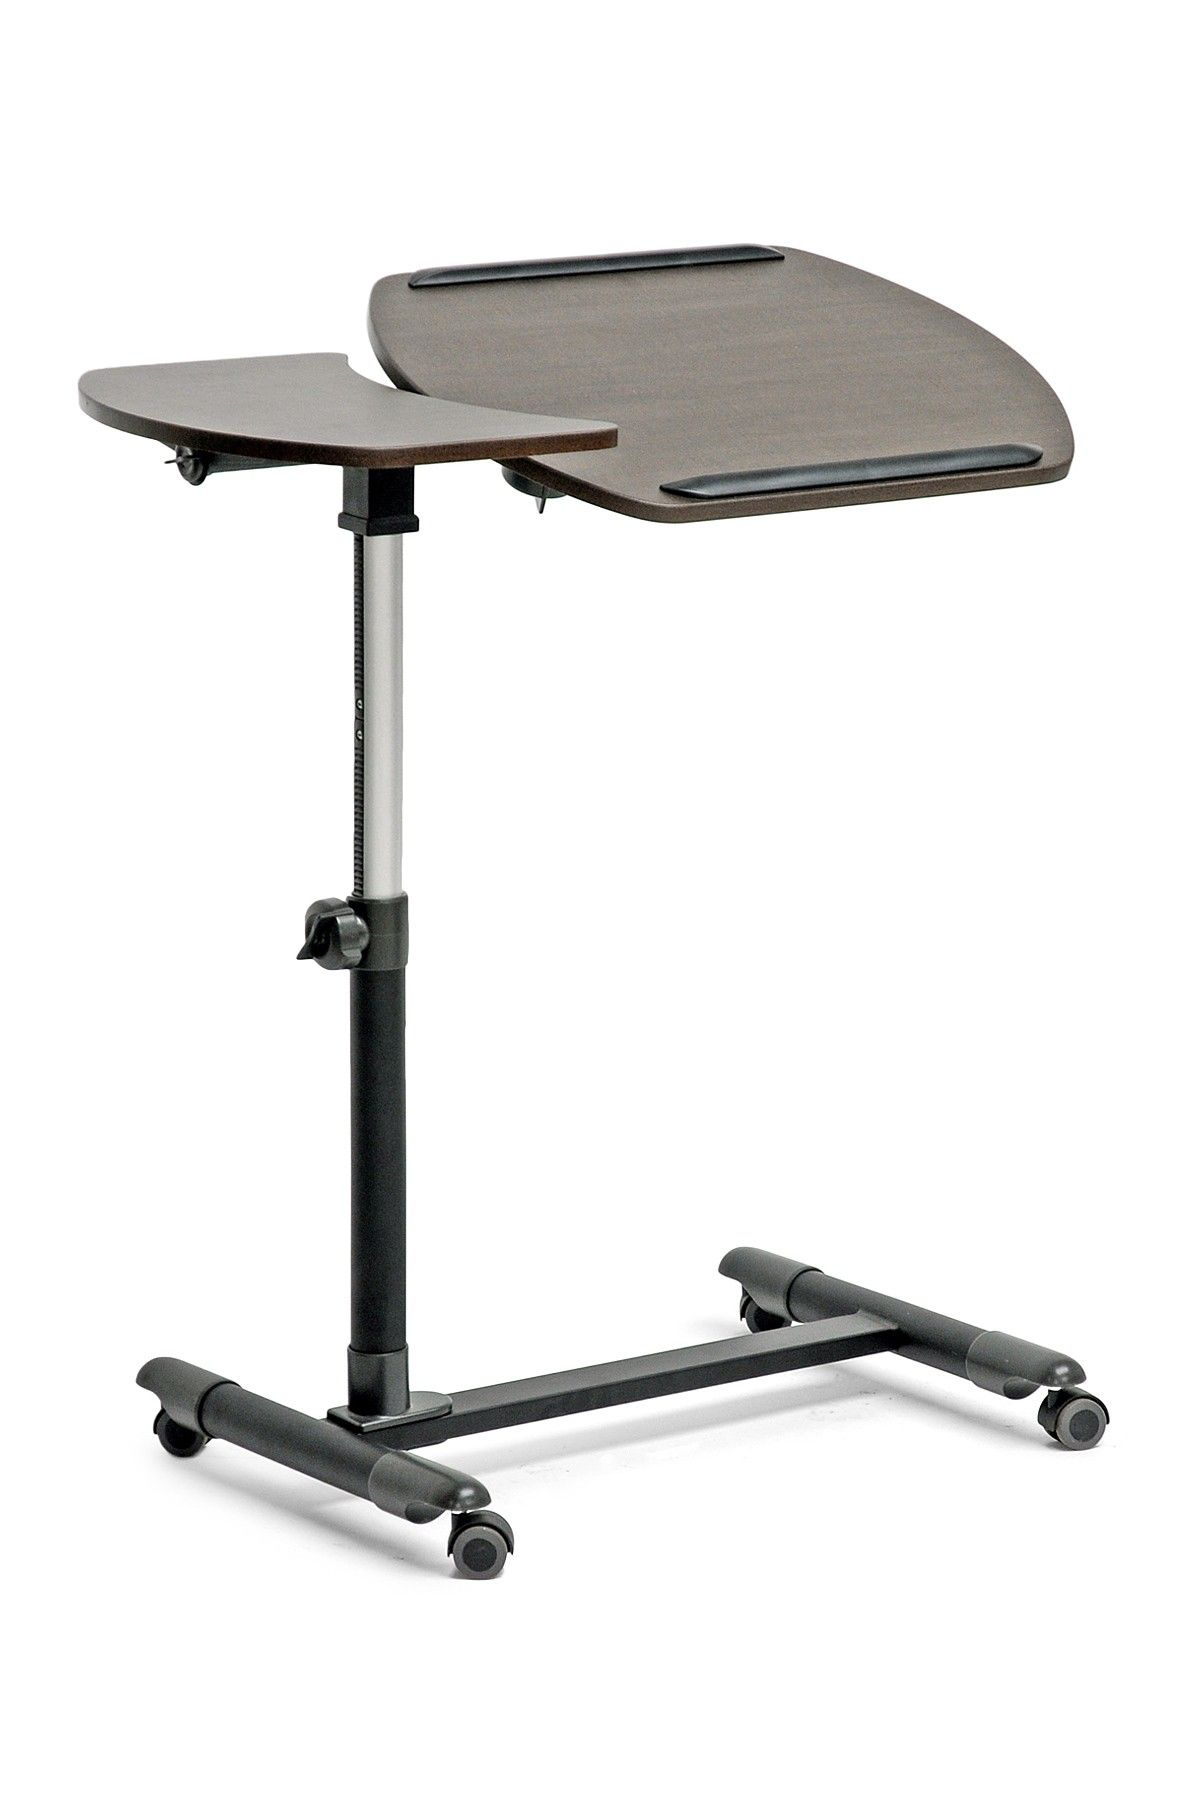 Swivel Laptop Table I Use This Every Day To Watch And